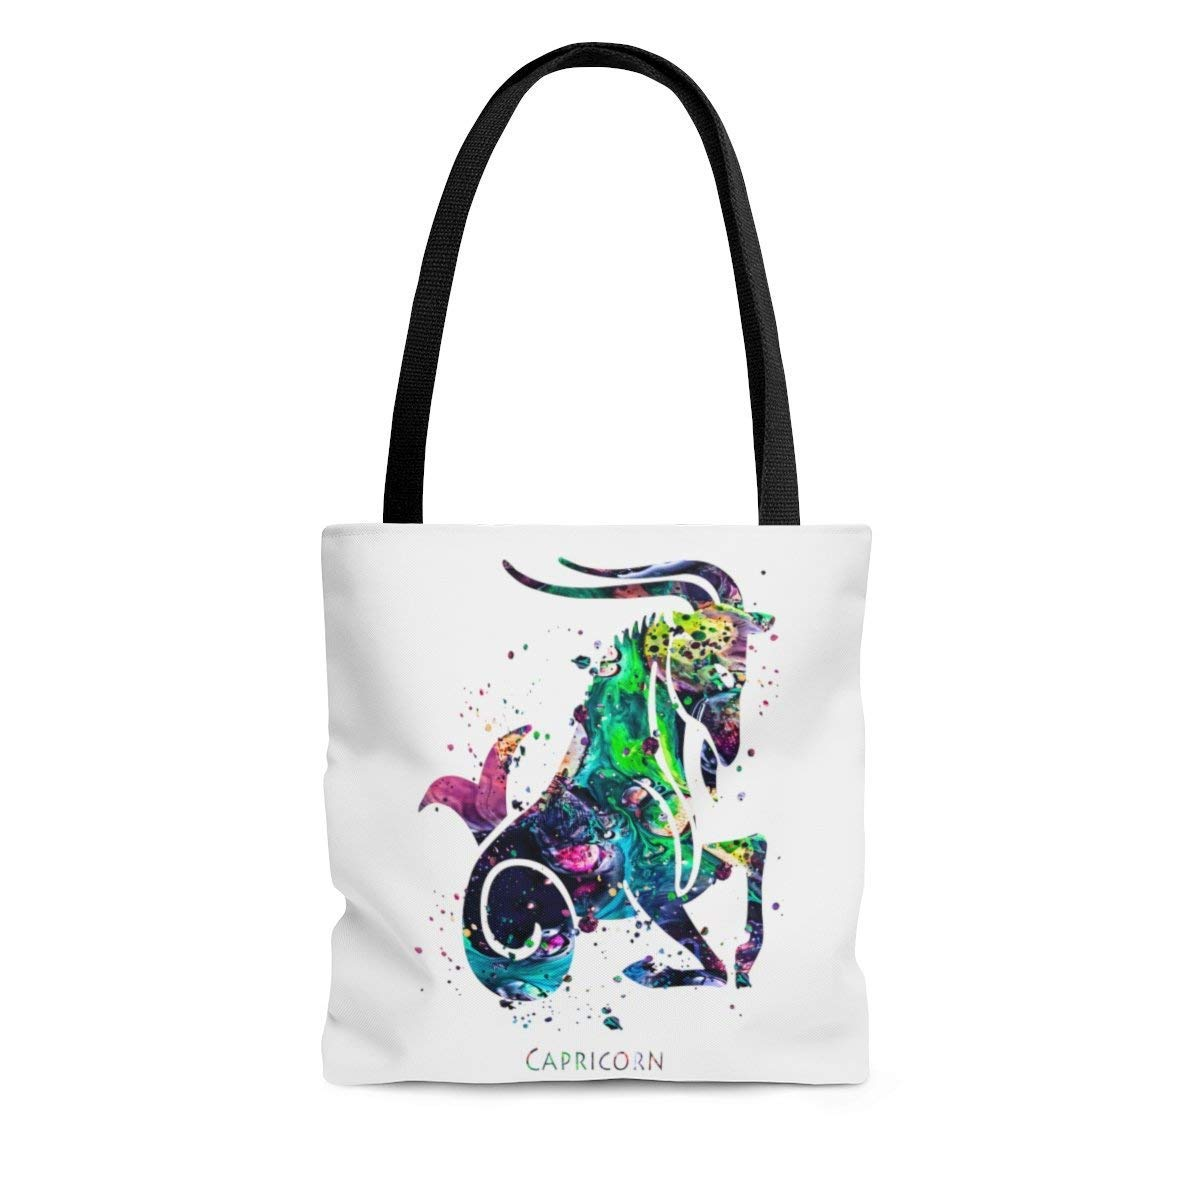 Capricorn Zodiac Sign Tote All items in the store Bag Ba Grocery Beach Today's only Books